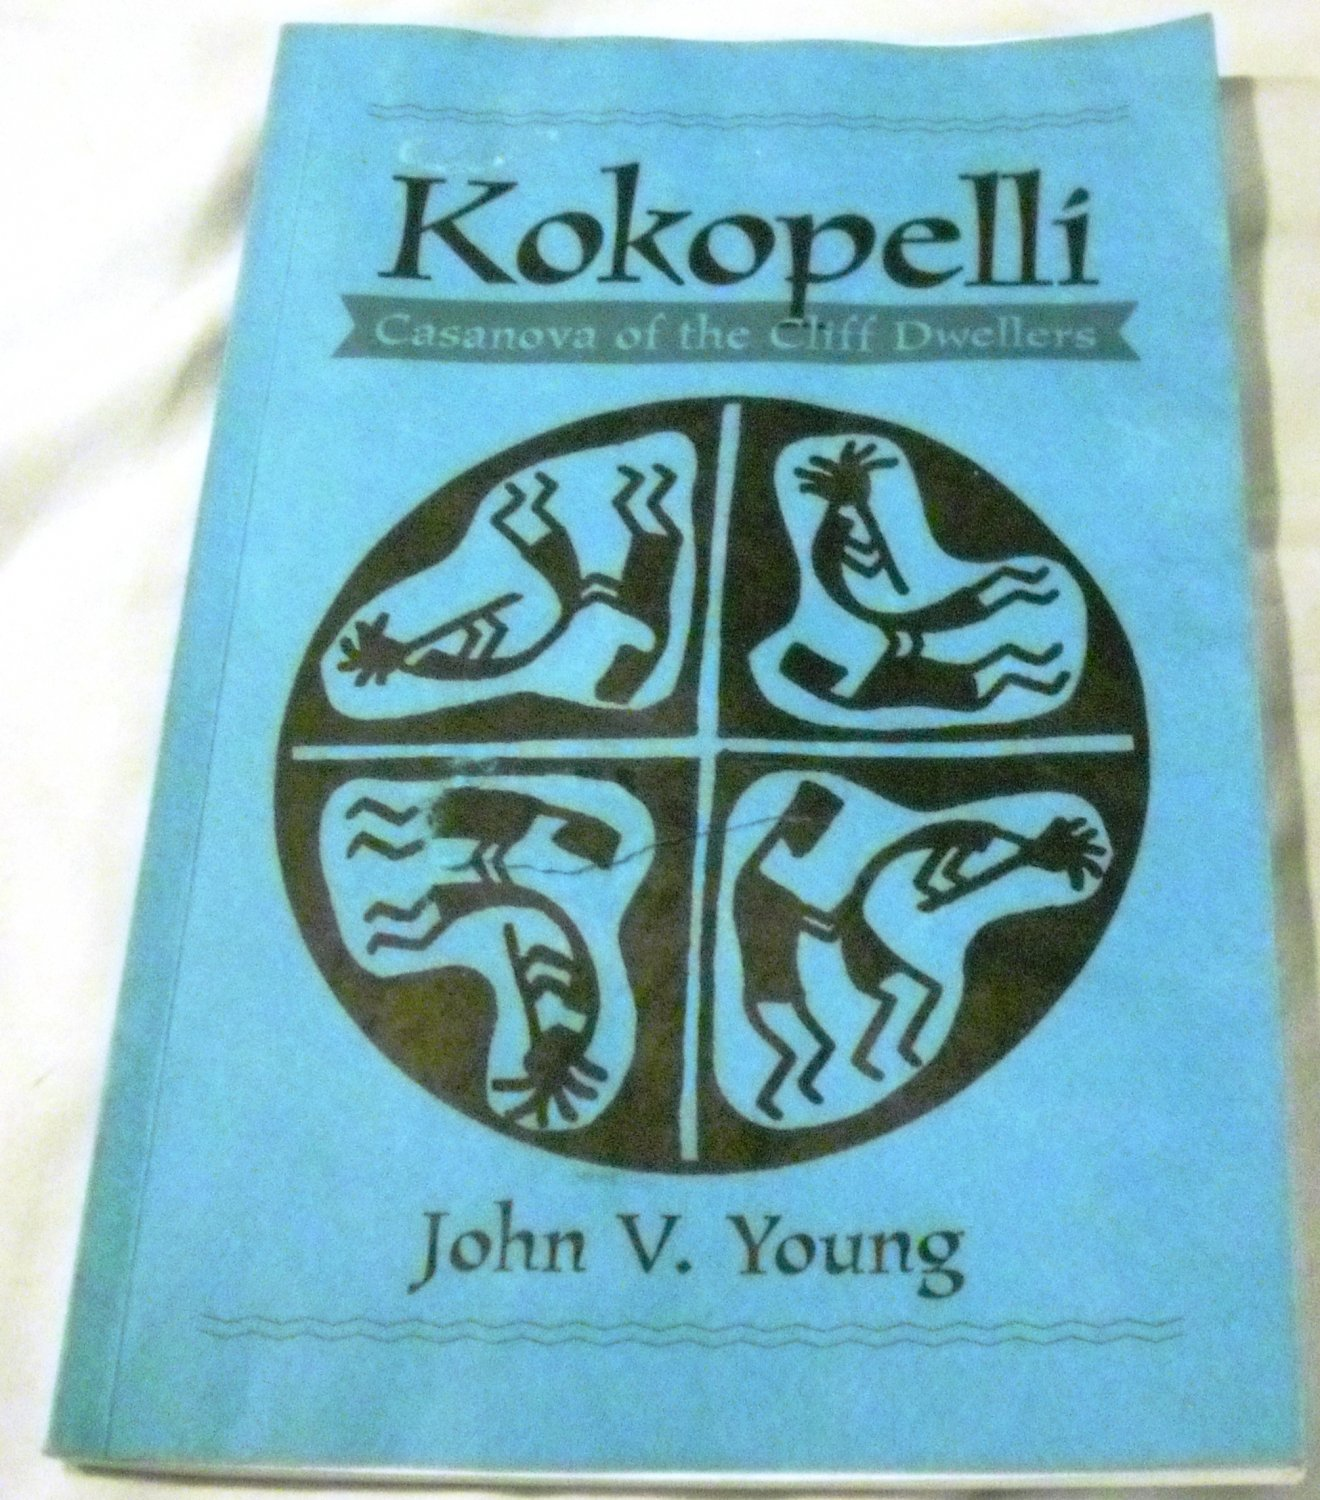 Kokopelli: Casanova of the Cliff Dwellers: The Hunchbacked Flute Player by John V. Young (Dec 1990)